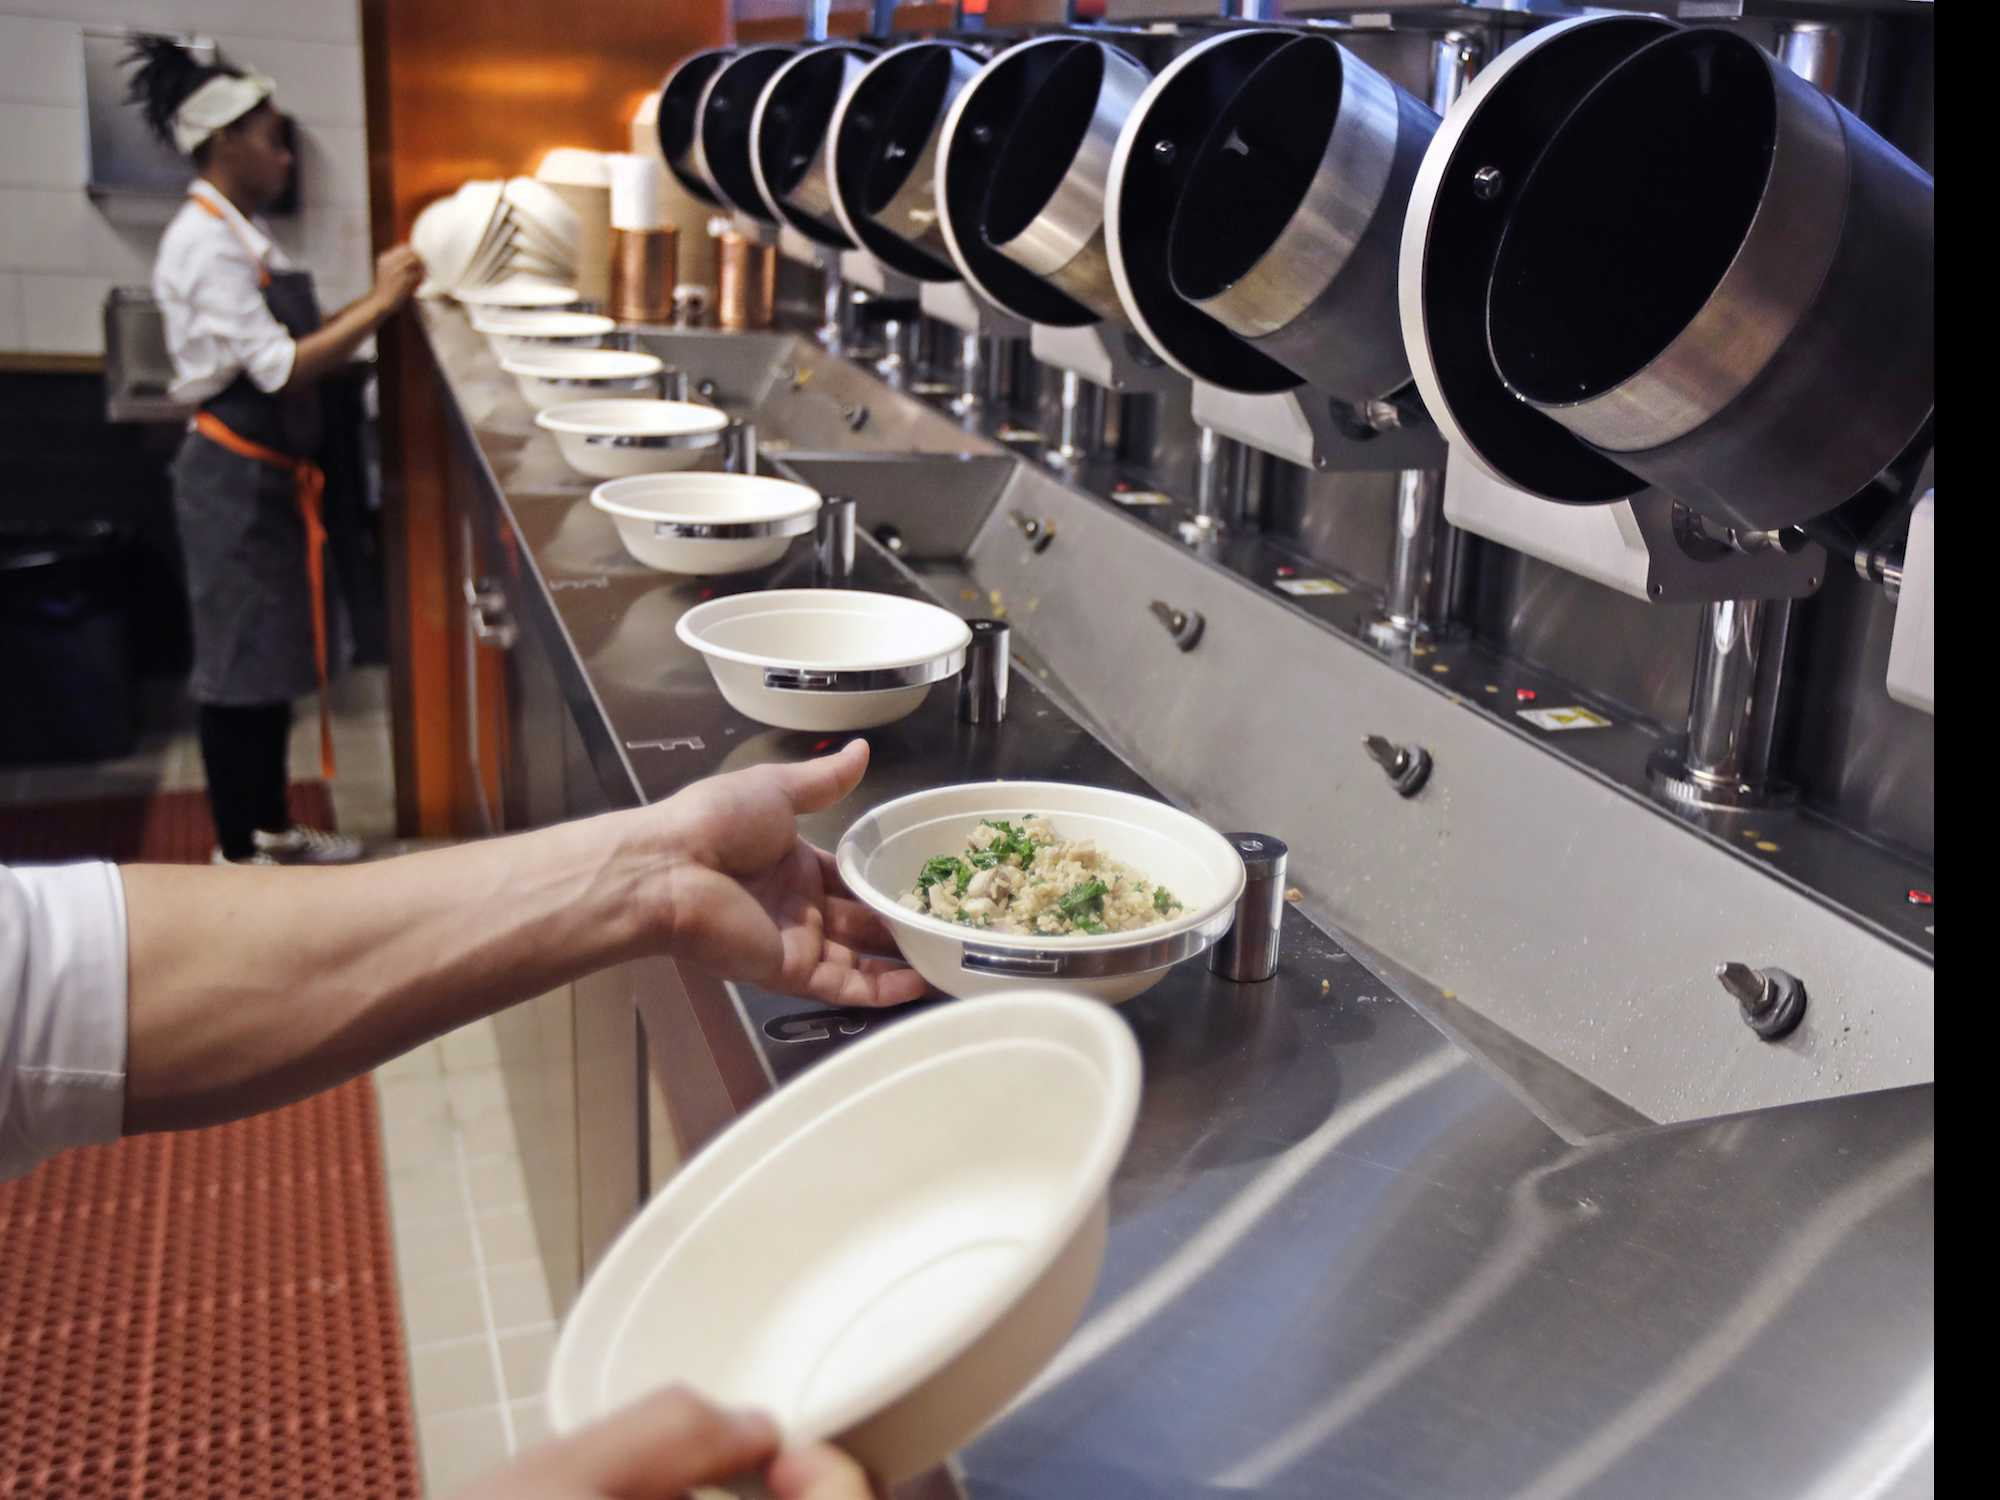 Robot Fast-Food Chefs: Hype or Sign of Industry Change?